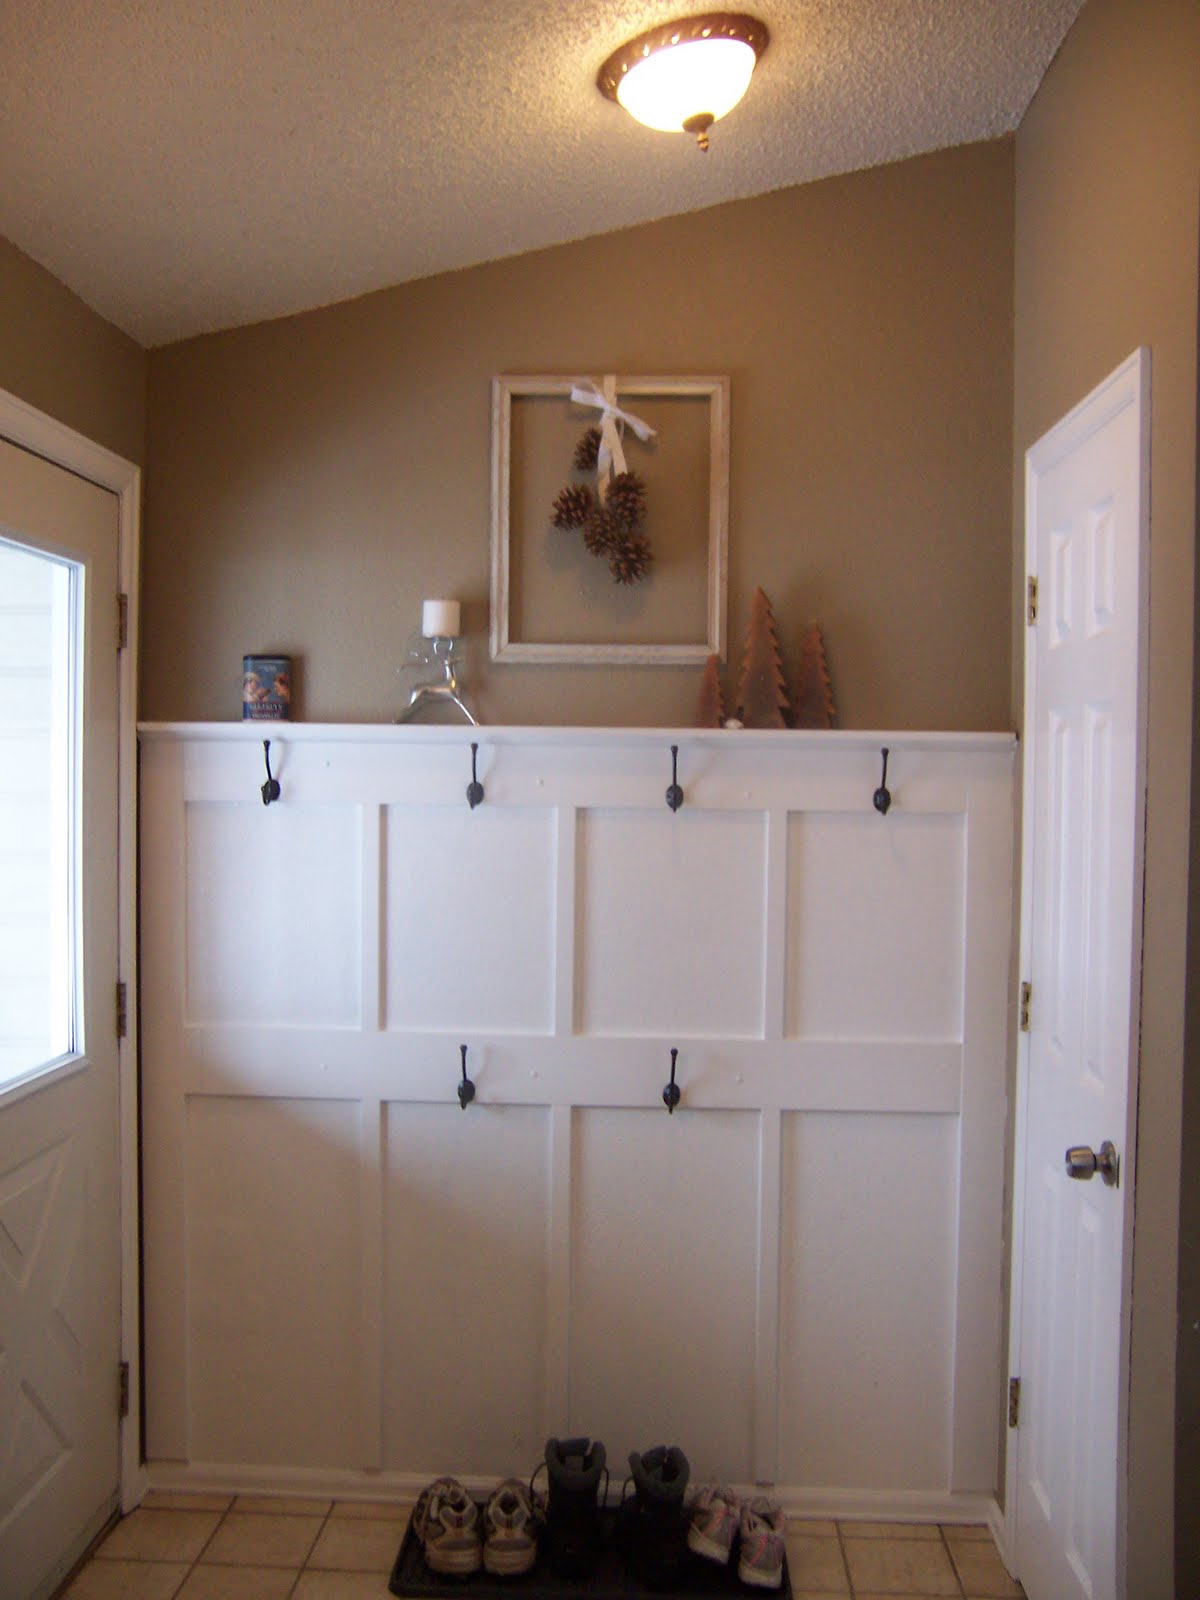 A beautiful cottage home kitchen wall sneak peak for To do board for kitchen